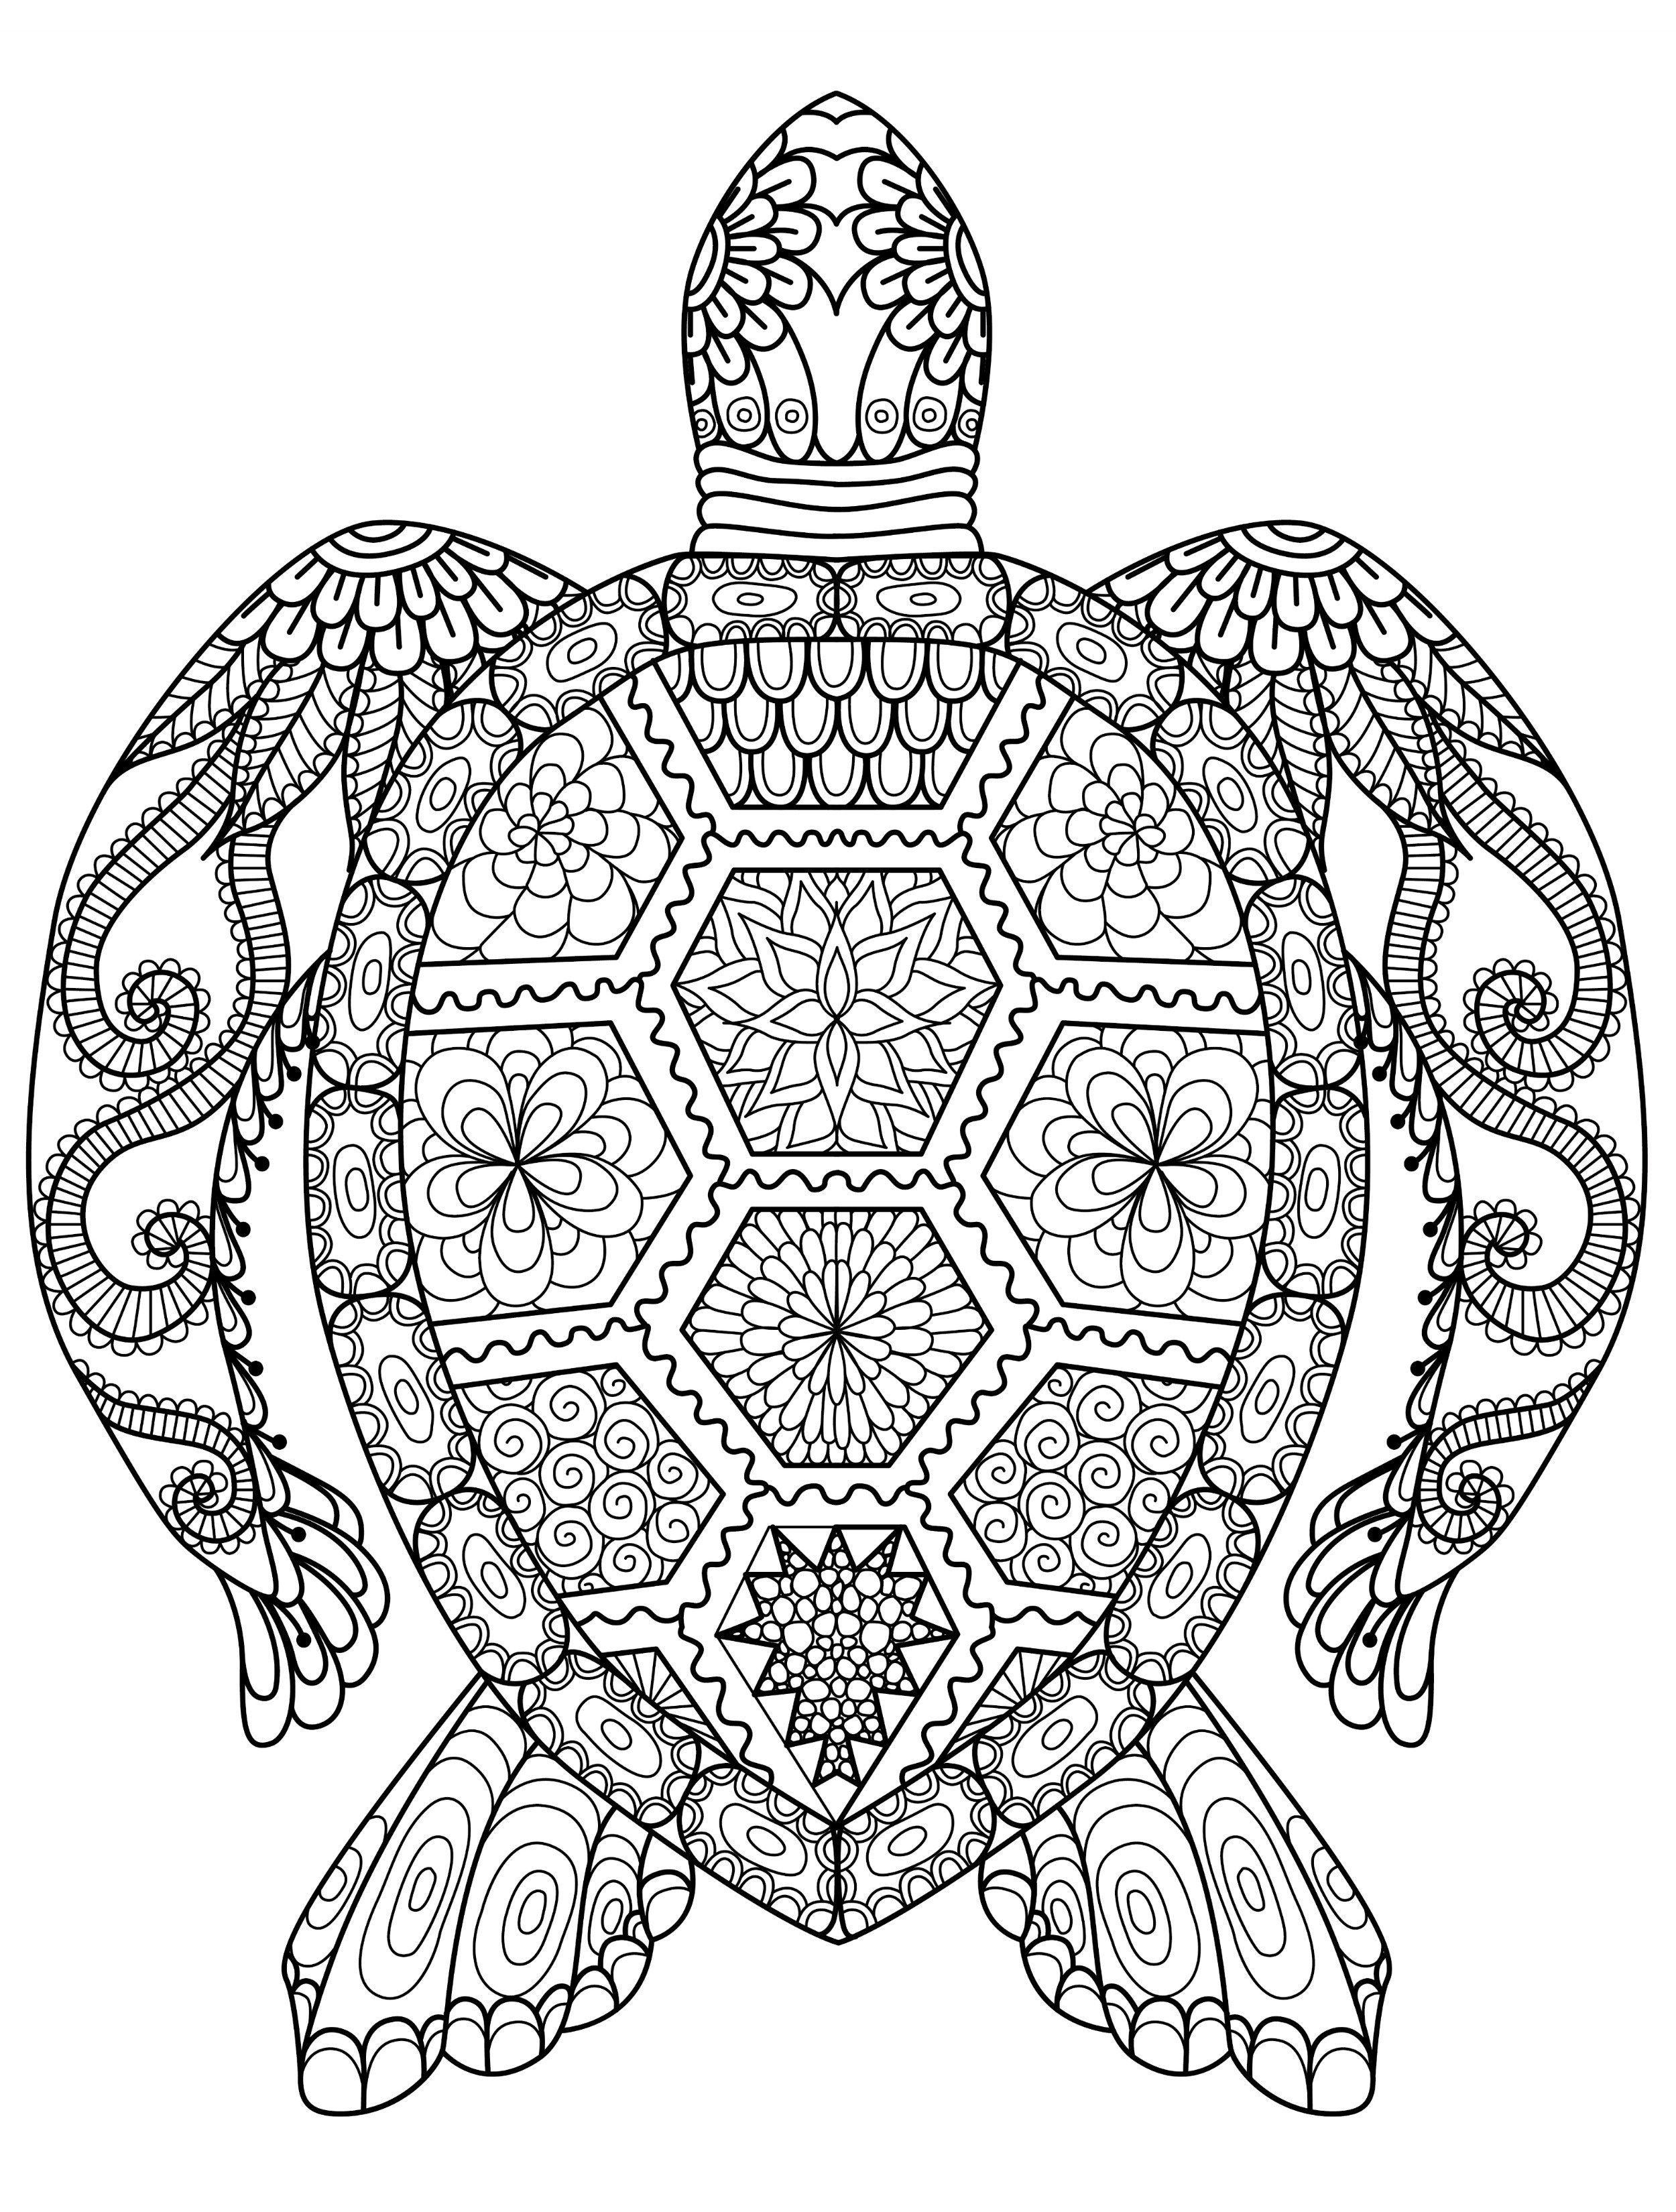 cool coloring designs to print free printable geometric coloring pages for kids coloring designs print cool to